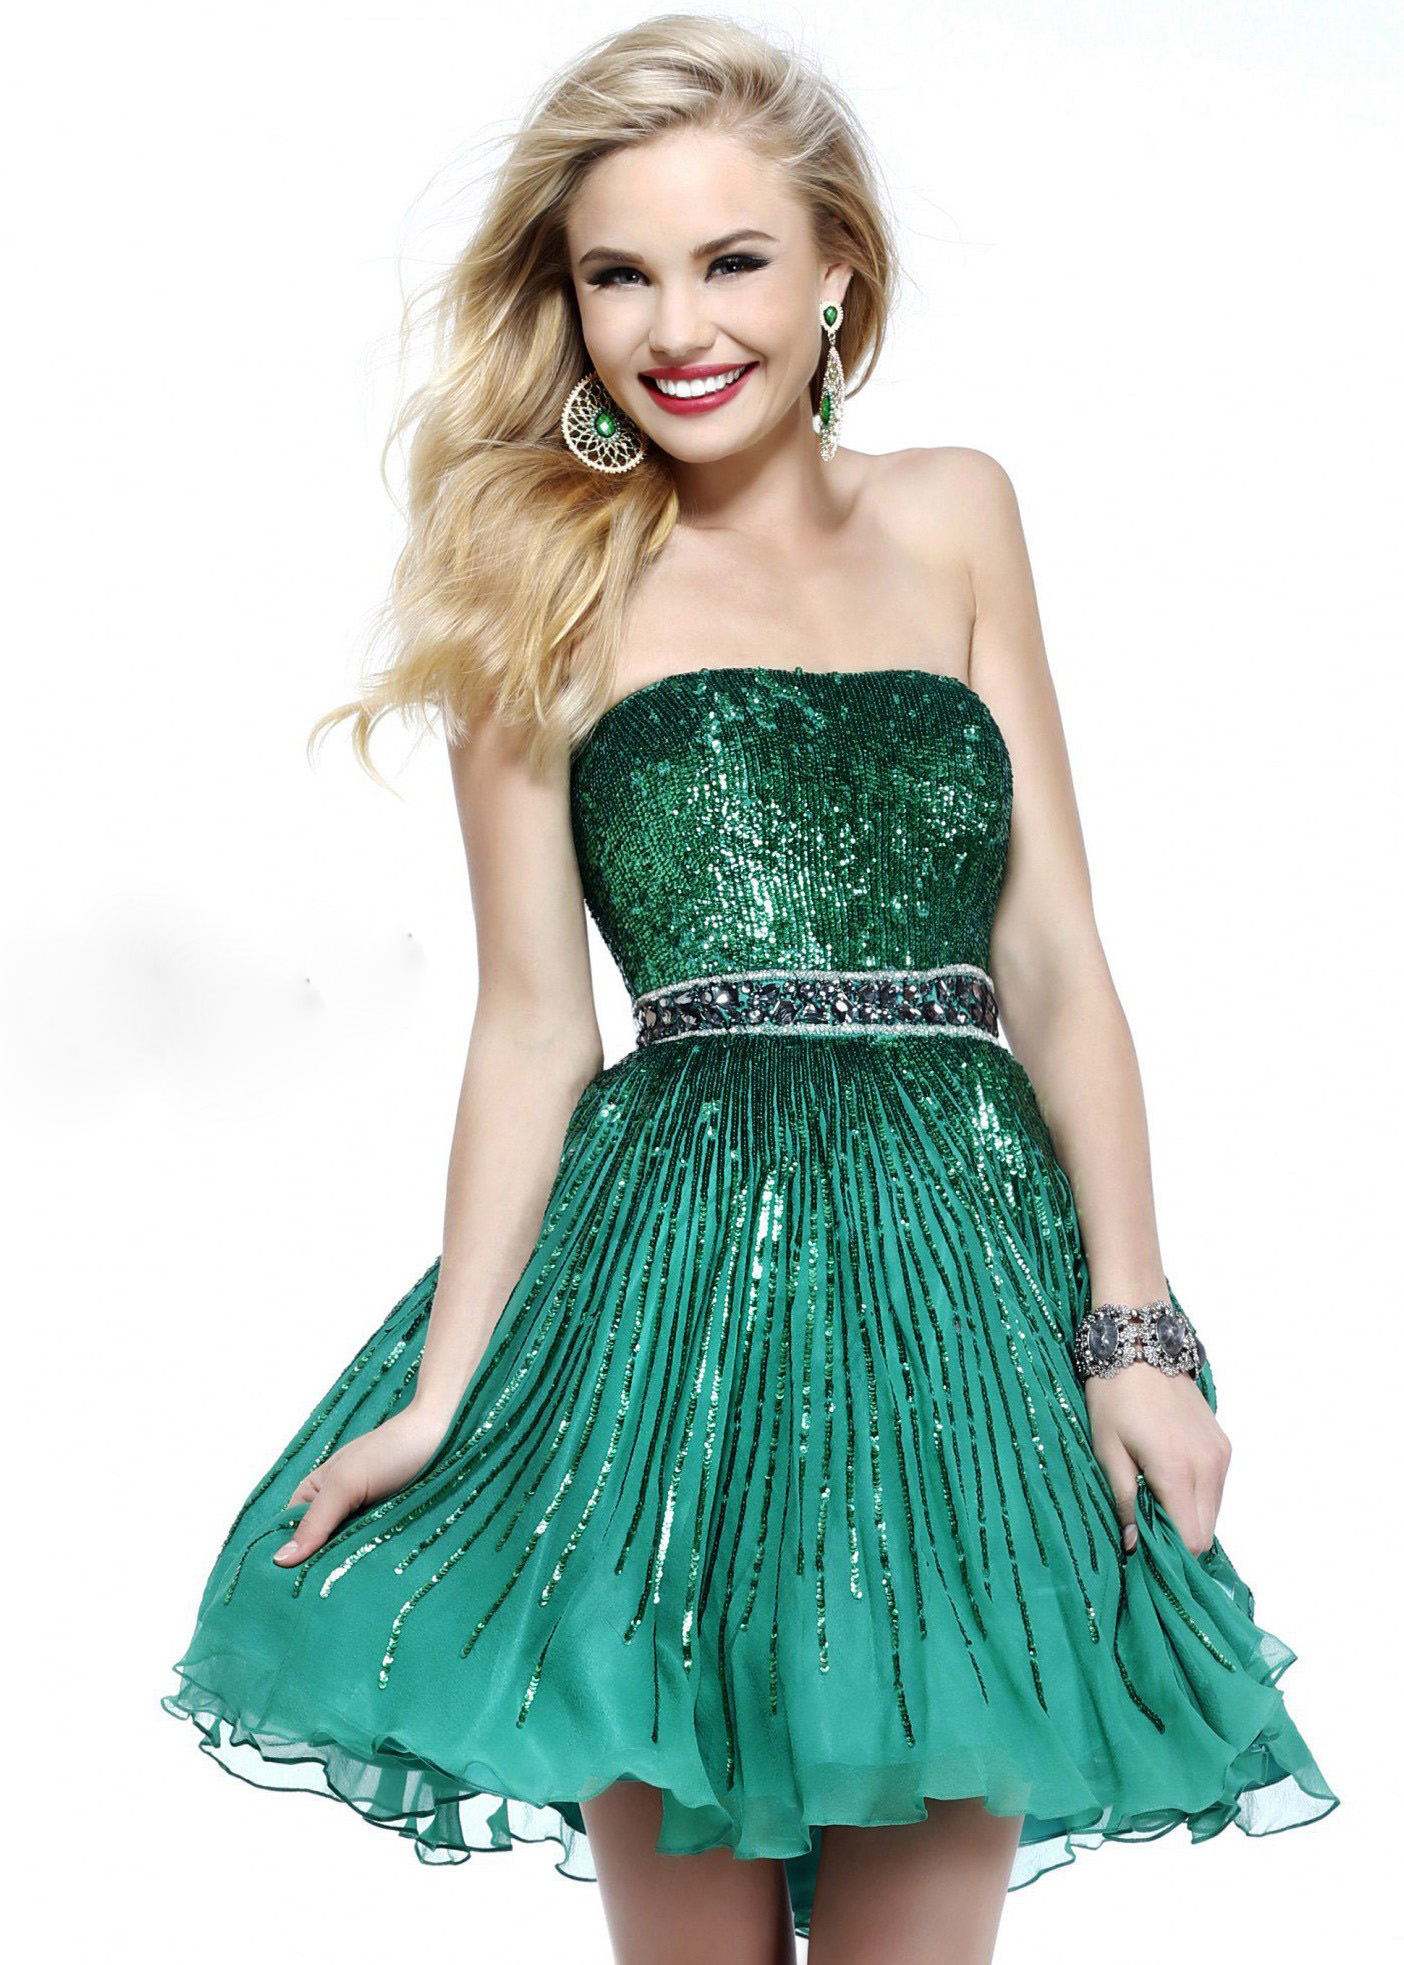 Green Homecoming Dress Photo Album - Klarosa